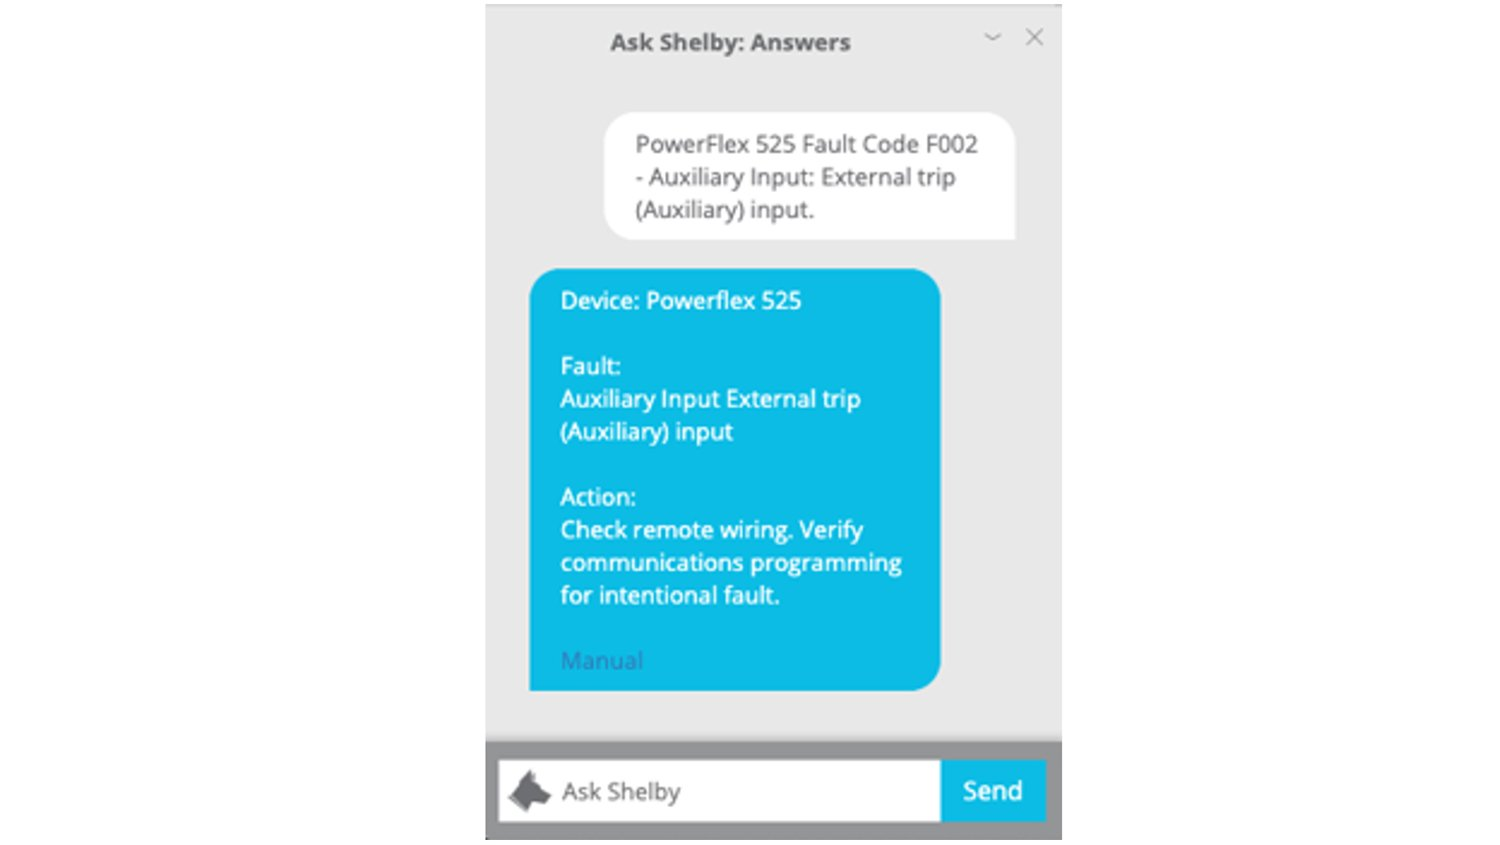 Screen image from mobile device showing chat message with the FactoryTalk Analytics for Devices chatbot about an equipment fault code